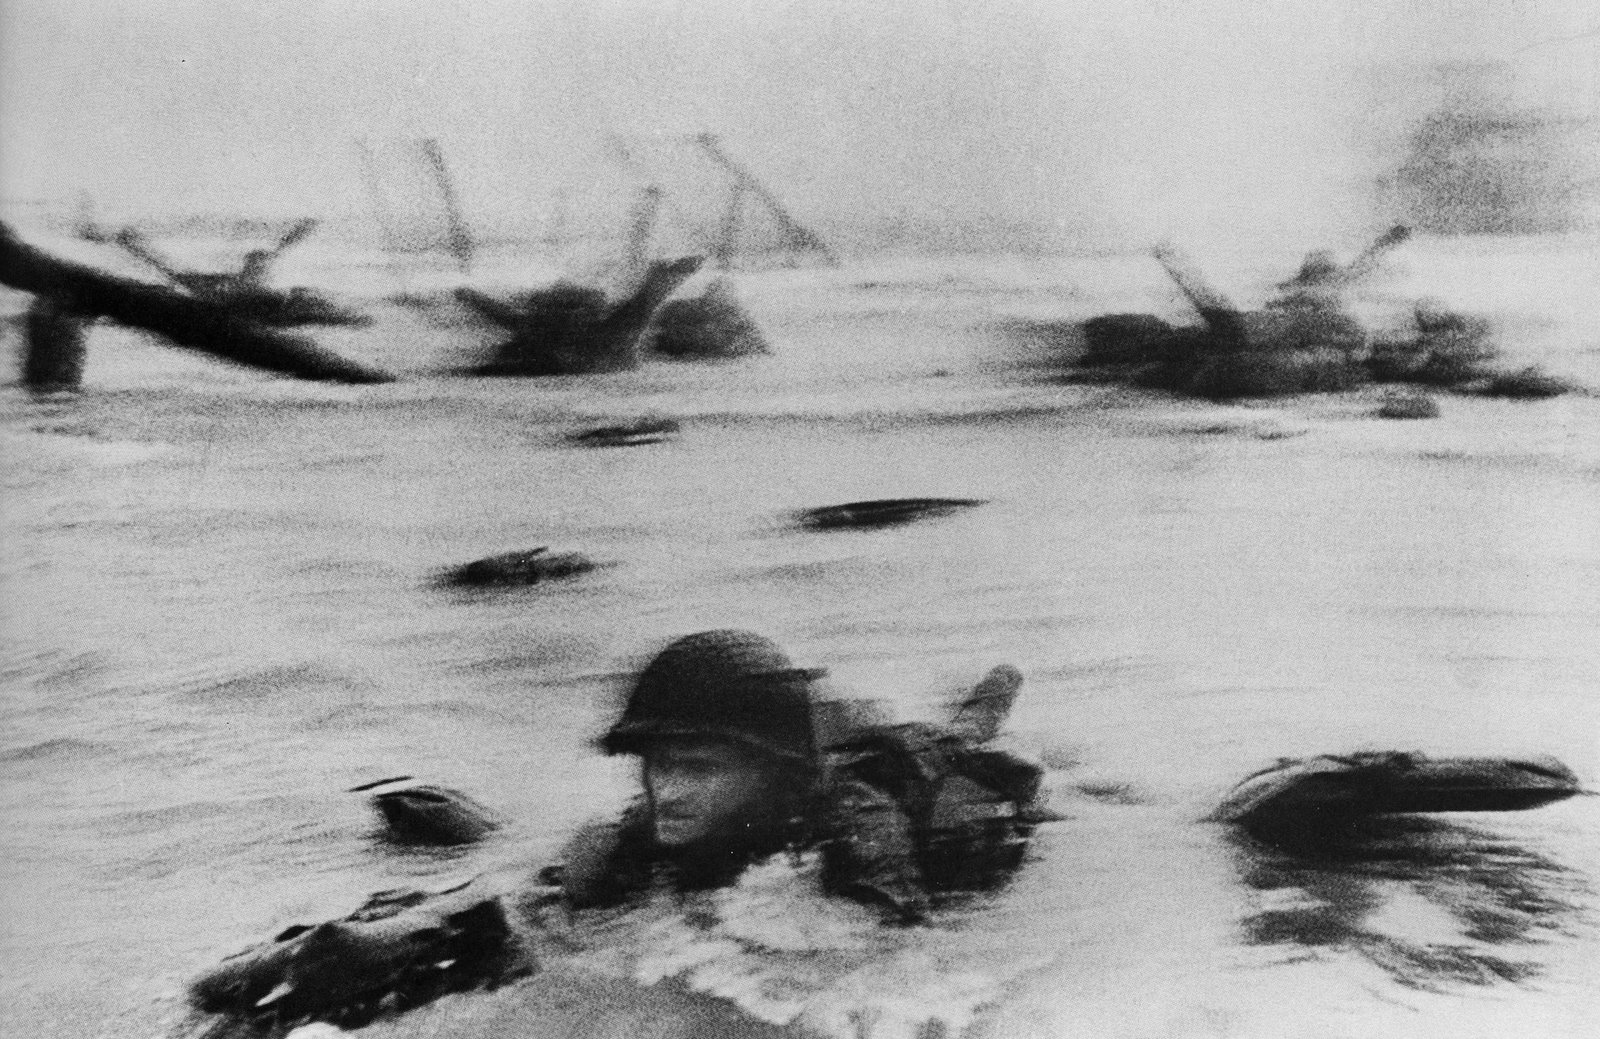 Robert Capa, Ed Regan Veteran of Omaha Beach D-Day Landing